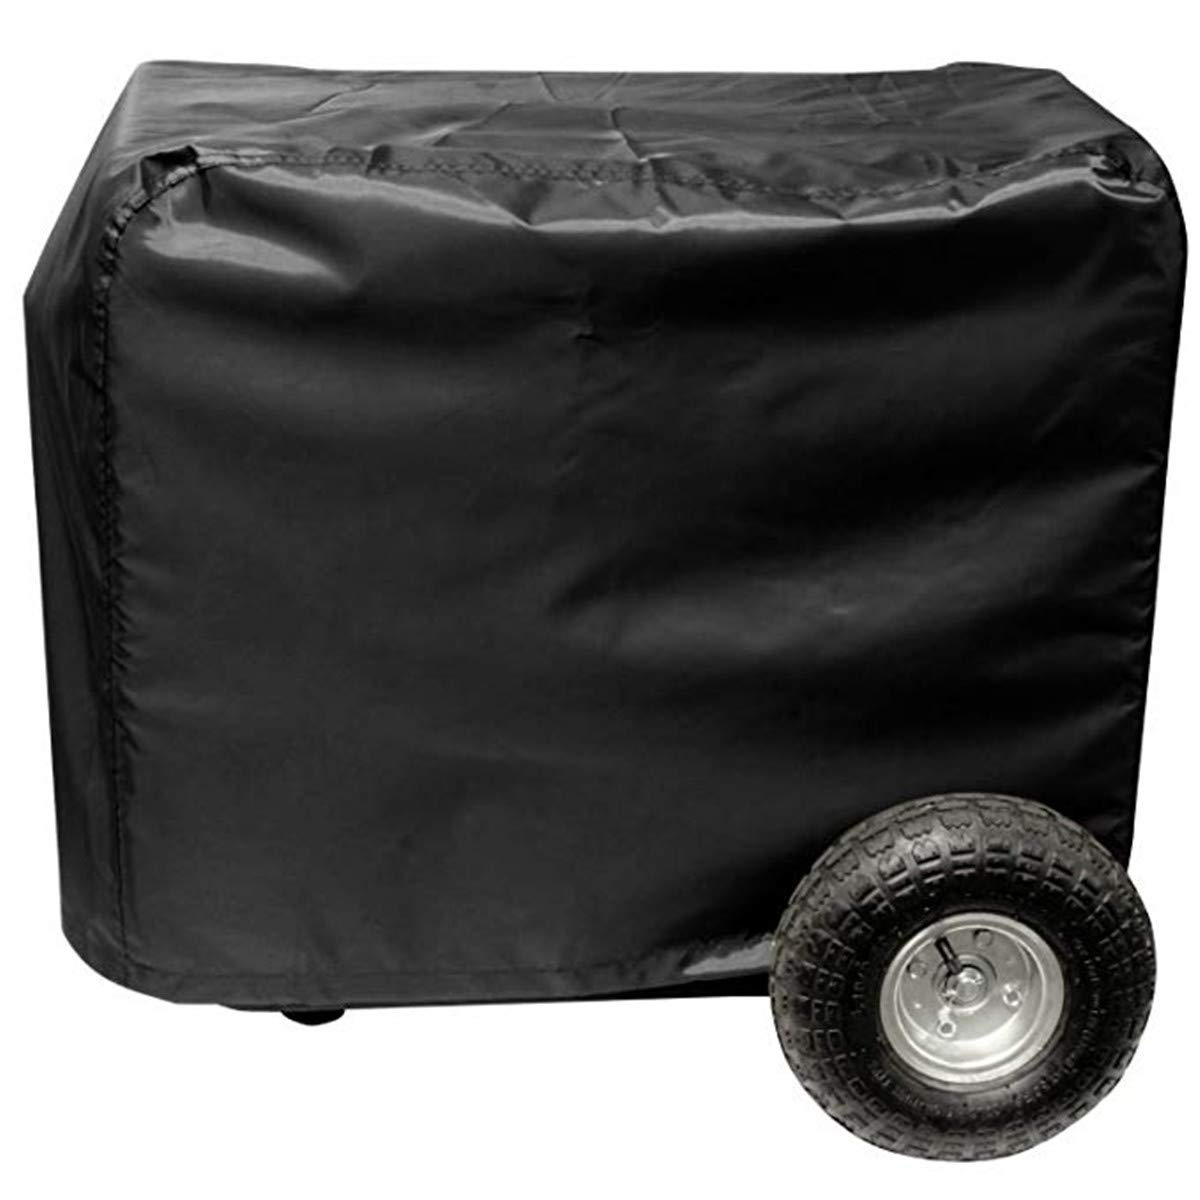 Wakaka Outdoor Generator Cover Water Proof/UV Resistant Generator Cover/Tent with Hook and Loop (32in) by Wakaka